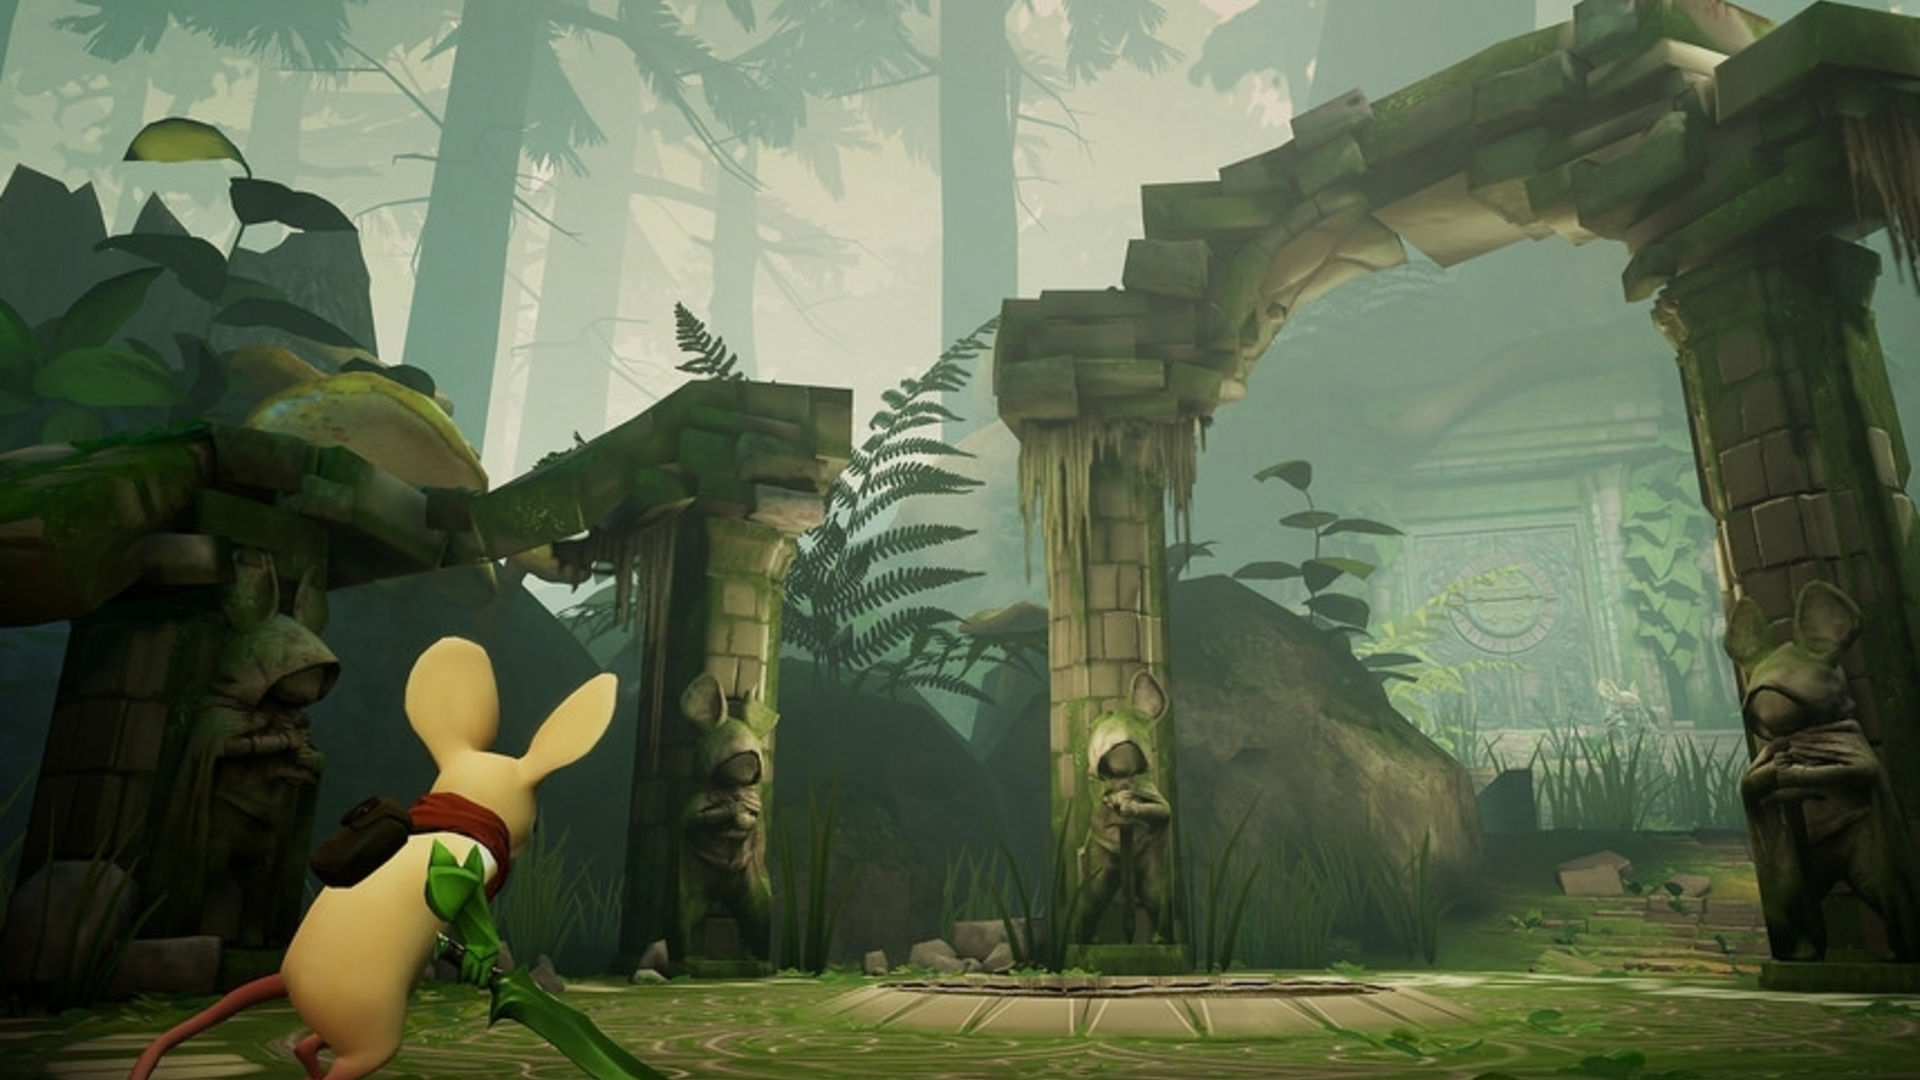 Heres More Mousy Gameplay From Adorable Psvr Platform Puzzler Moss Soloco Ecer 2 Pcs